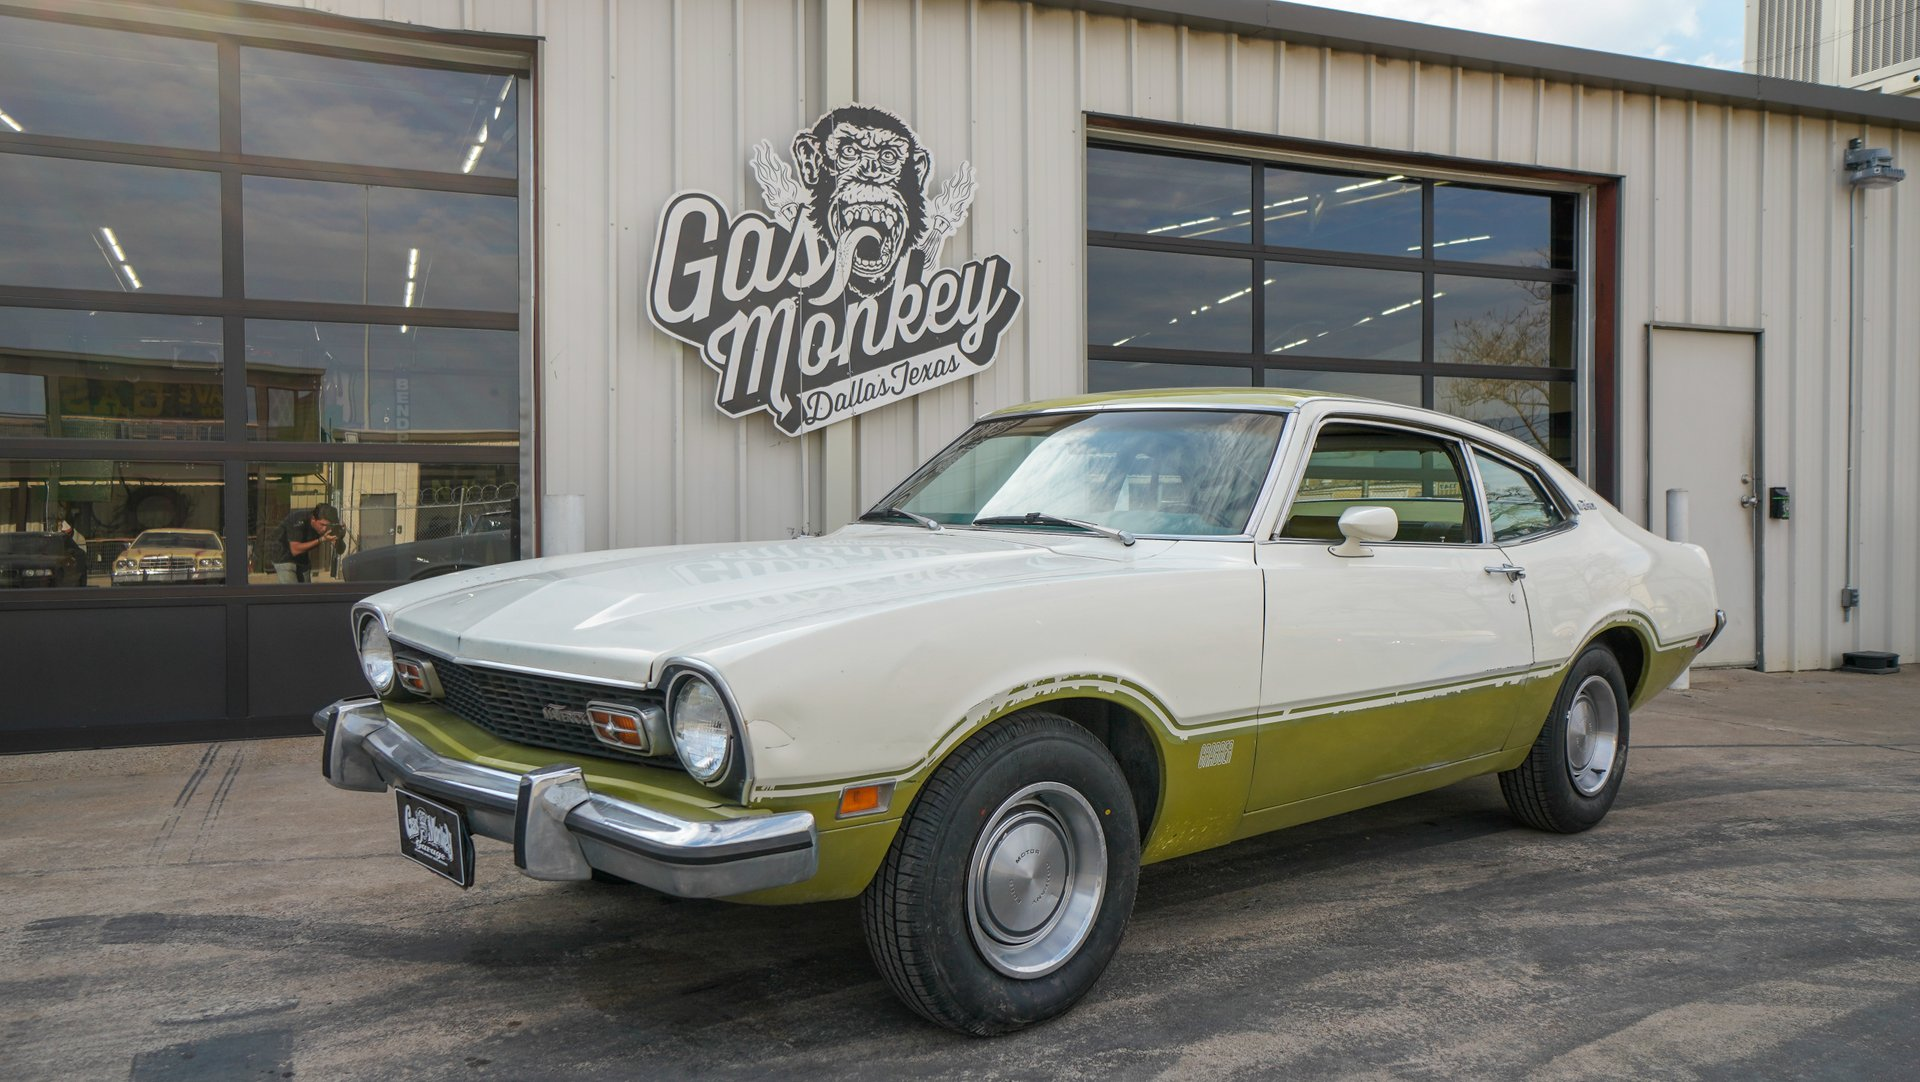 Ford Maverick For Sale >> 1973 Ford Maverick Gas Monkey Garage